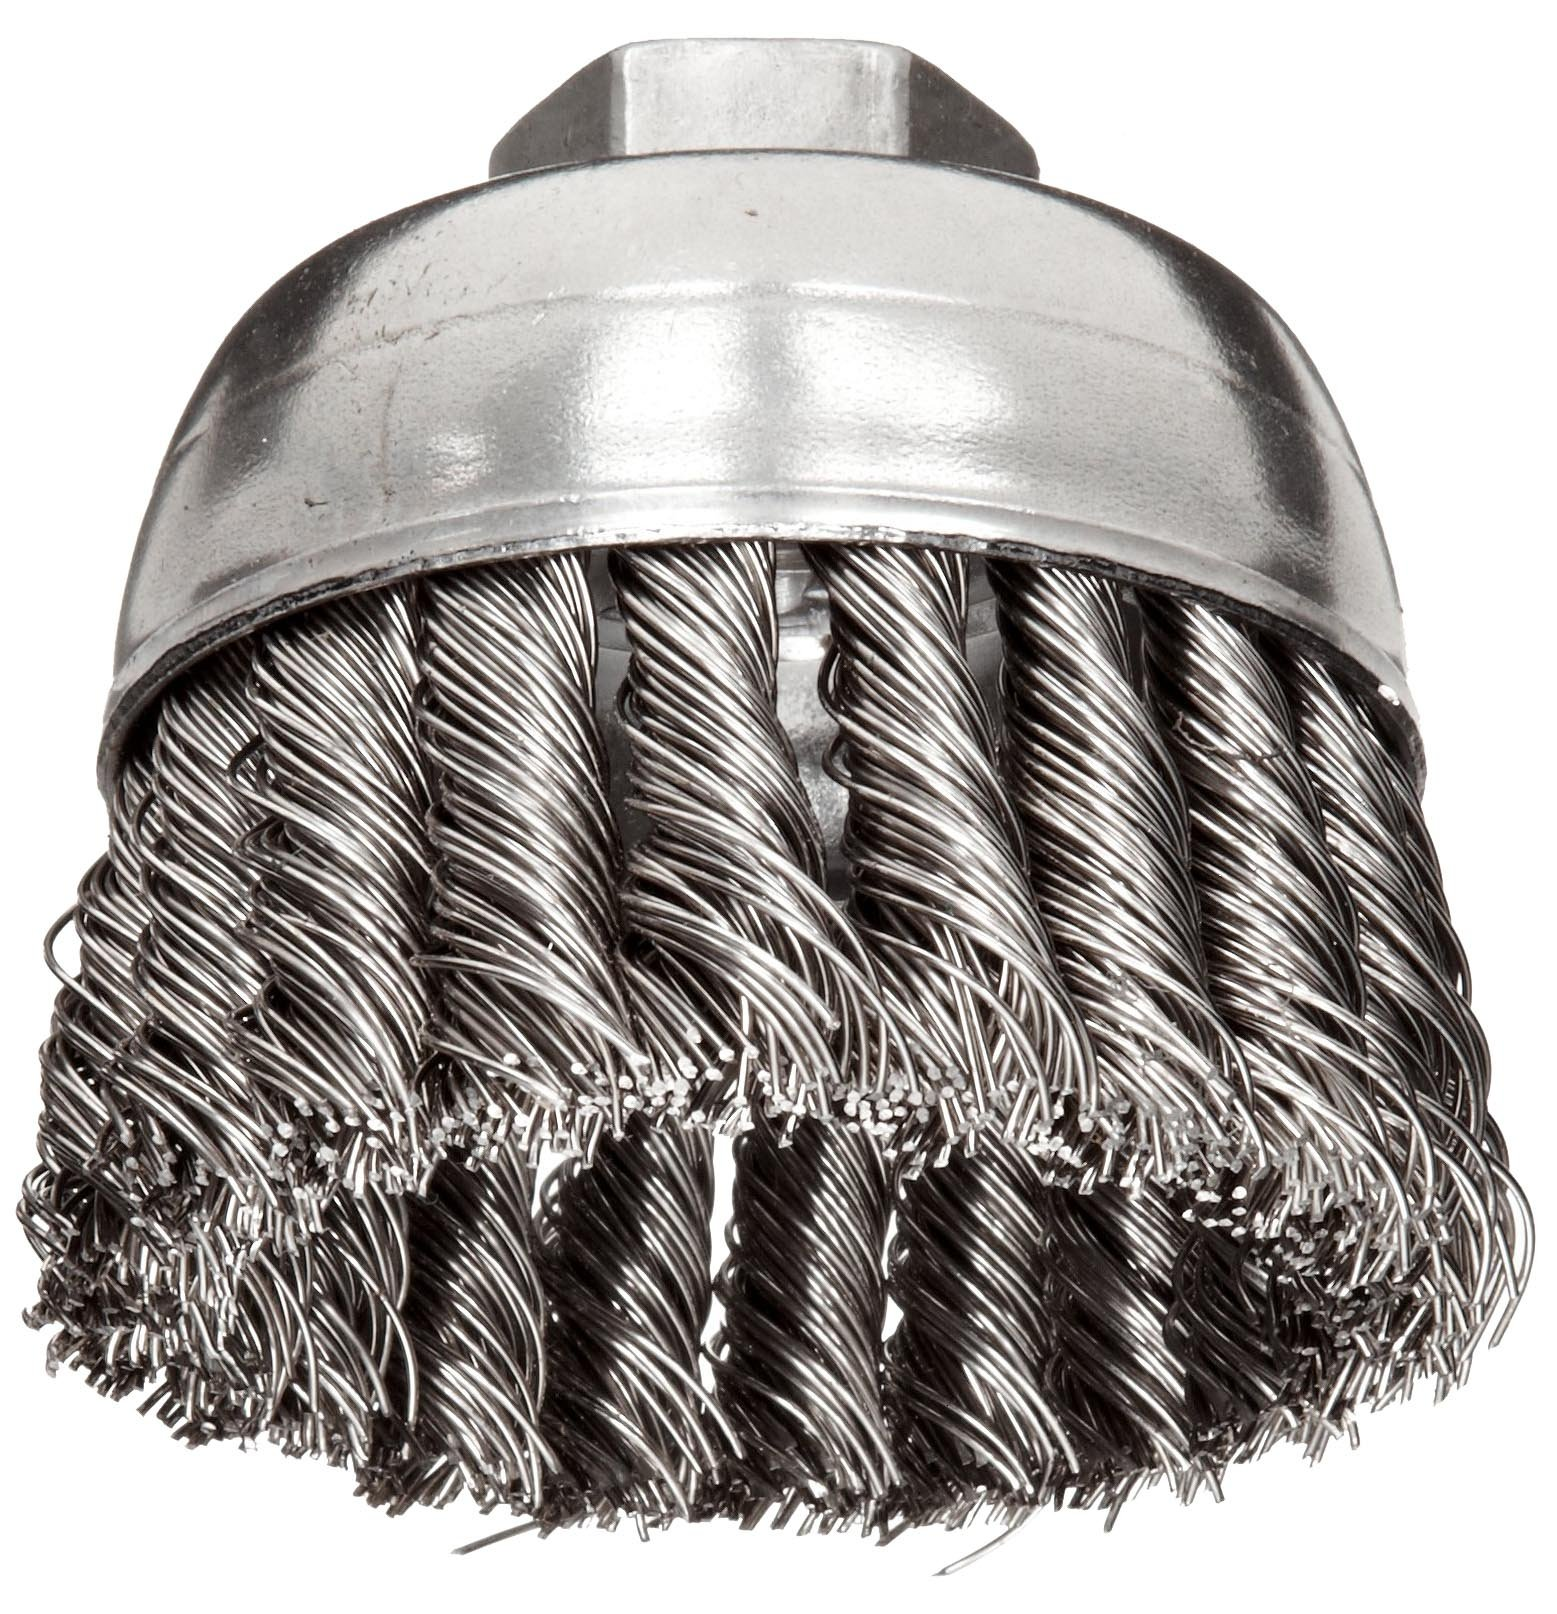 Weiler Wire Cup Brush, Threaded Hole, Stainless Steel 302, Partial Twist Knotted, 2-3/4'' Diameter, 0.02'' Wire Diameter, 5/8''-11 Arbor, 1'' Bristle Length, 14000 rpm (Pack of 1)